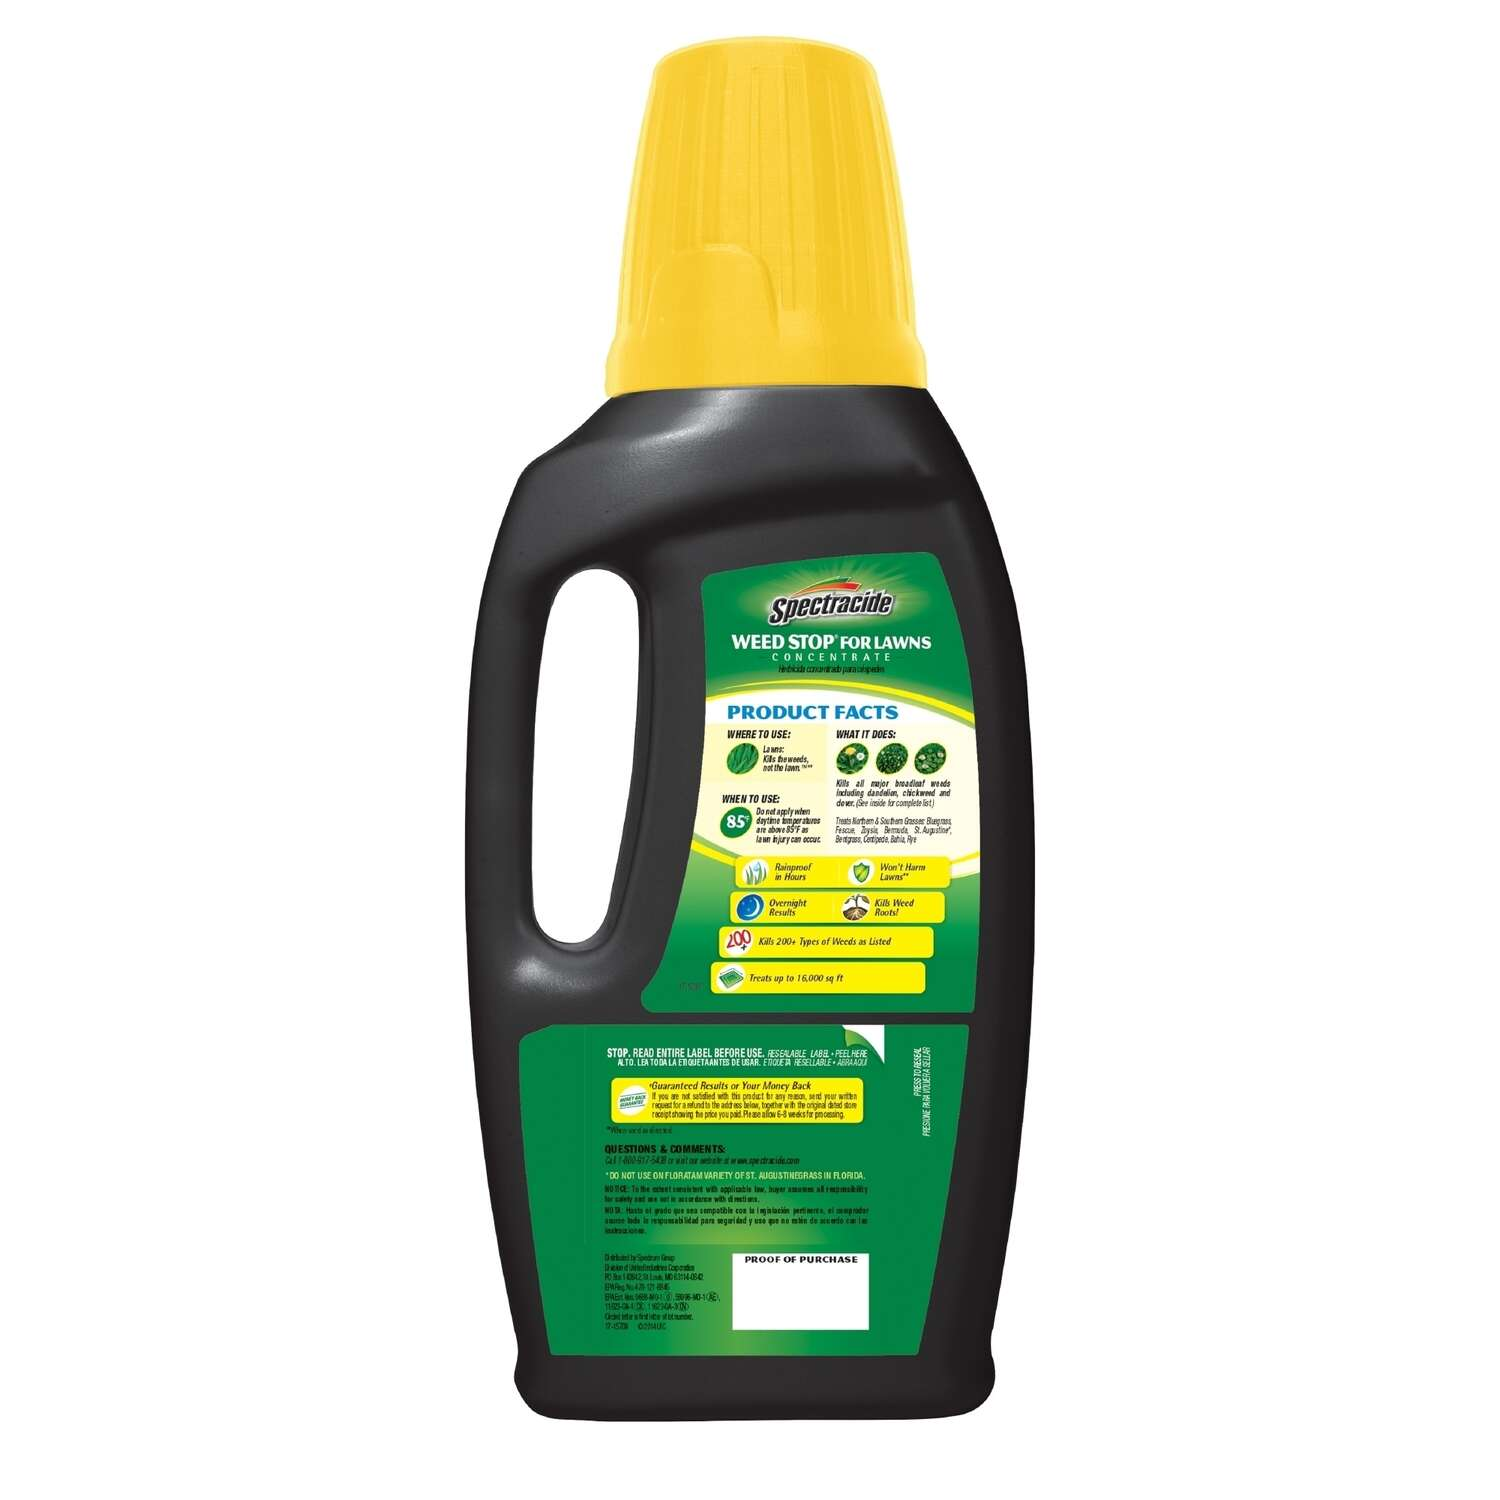 Spectracide  Weed Stop  Concentrate  Weed and Grass Killer  32